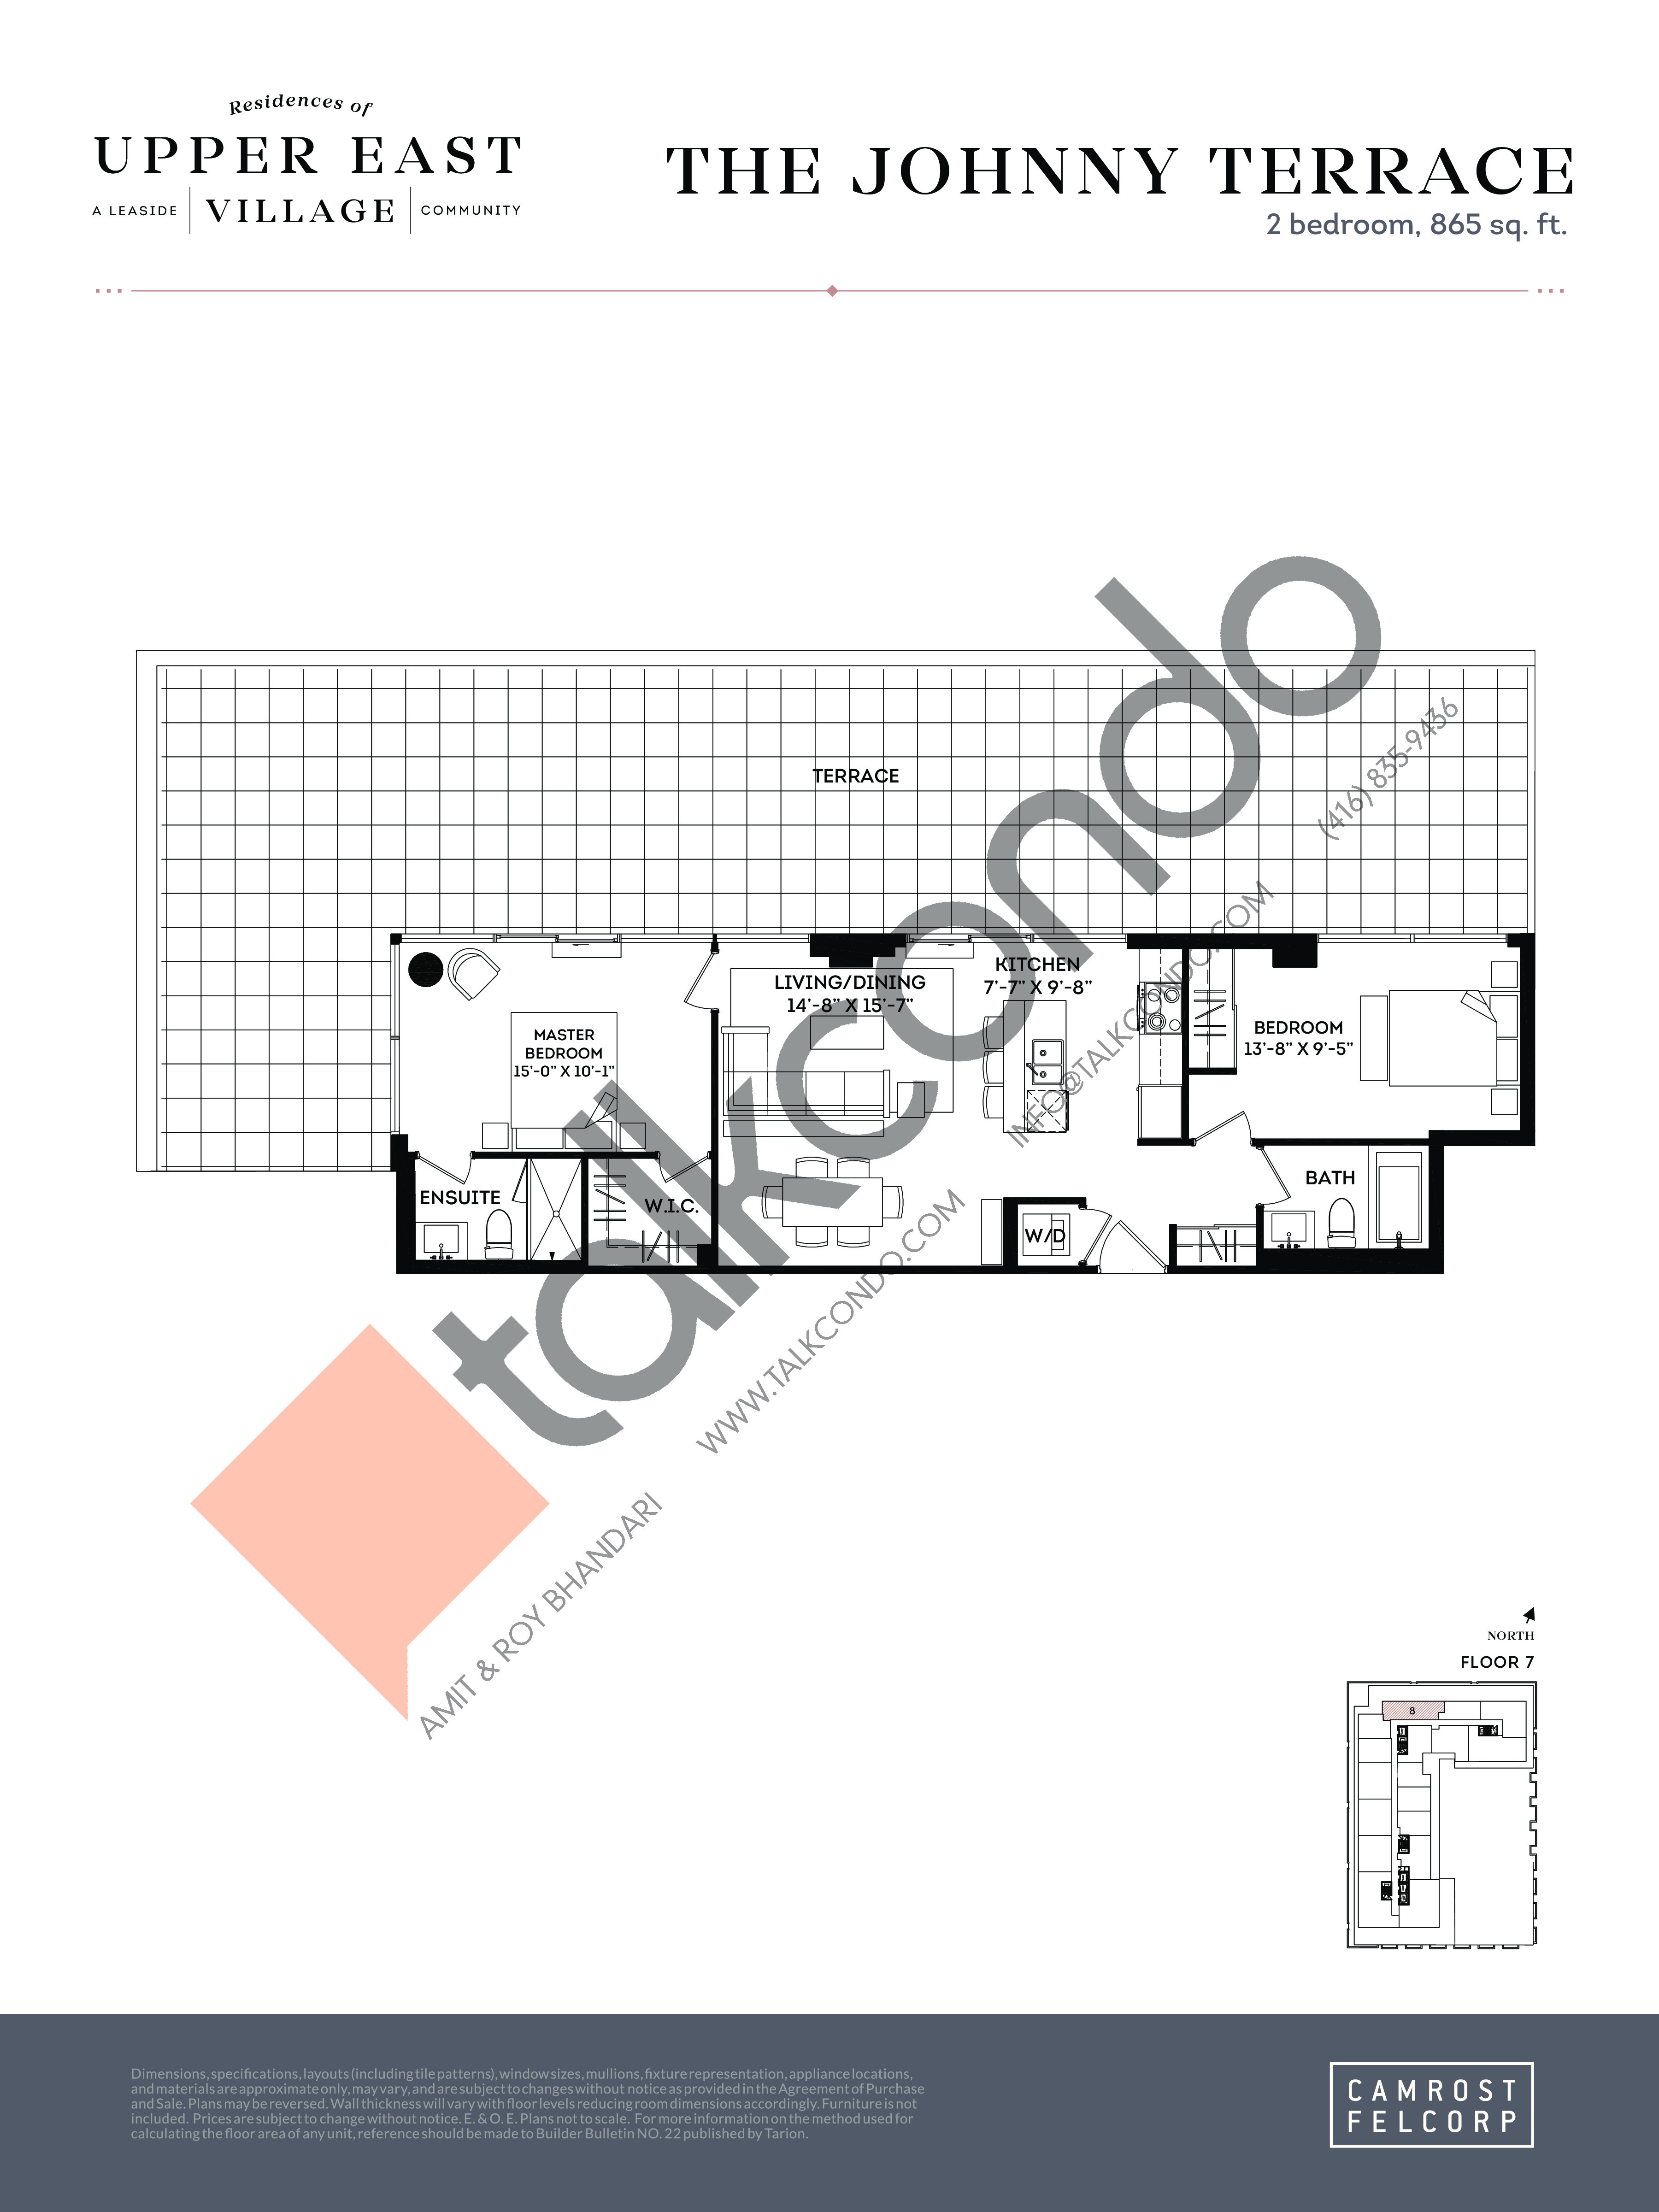 The Johnny Terrace Floor Plan at Upper East Village Condos - 865 sq.ft